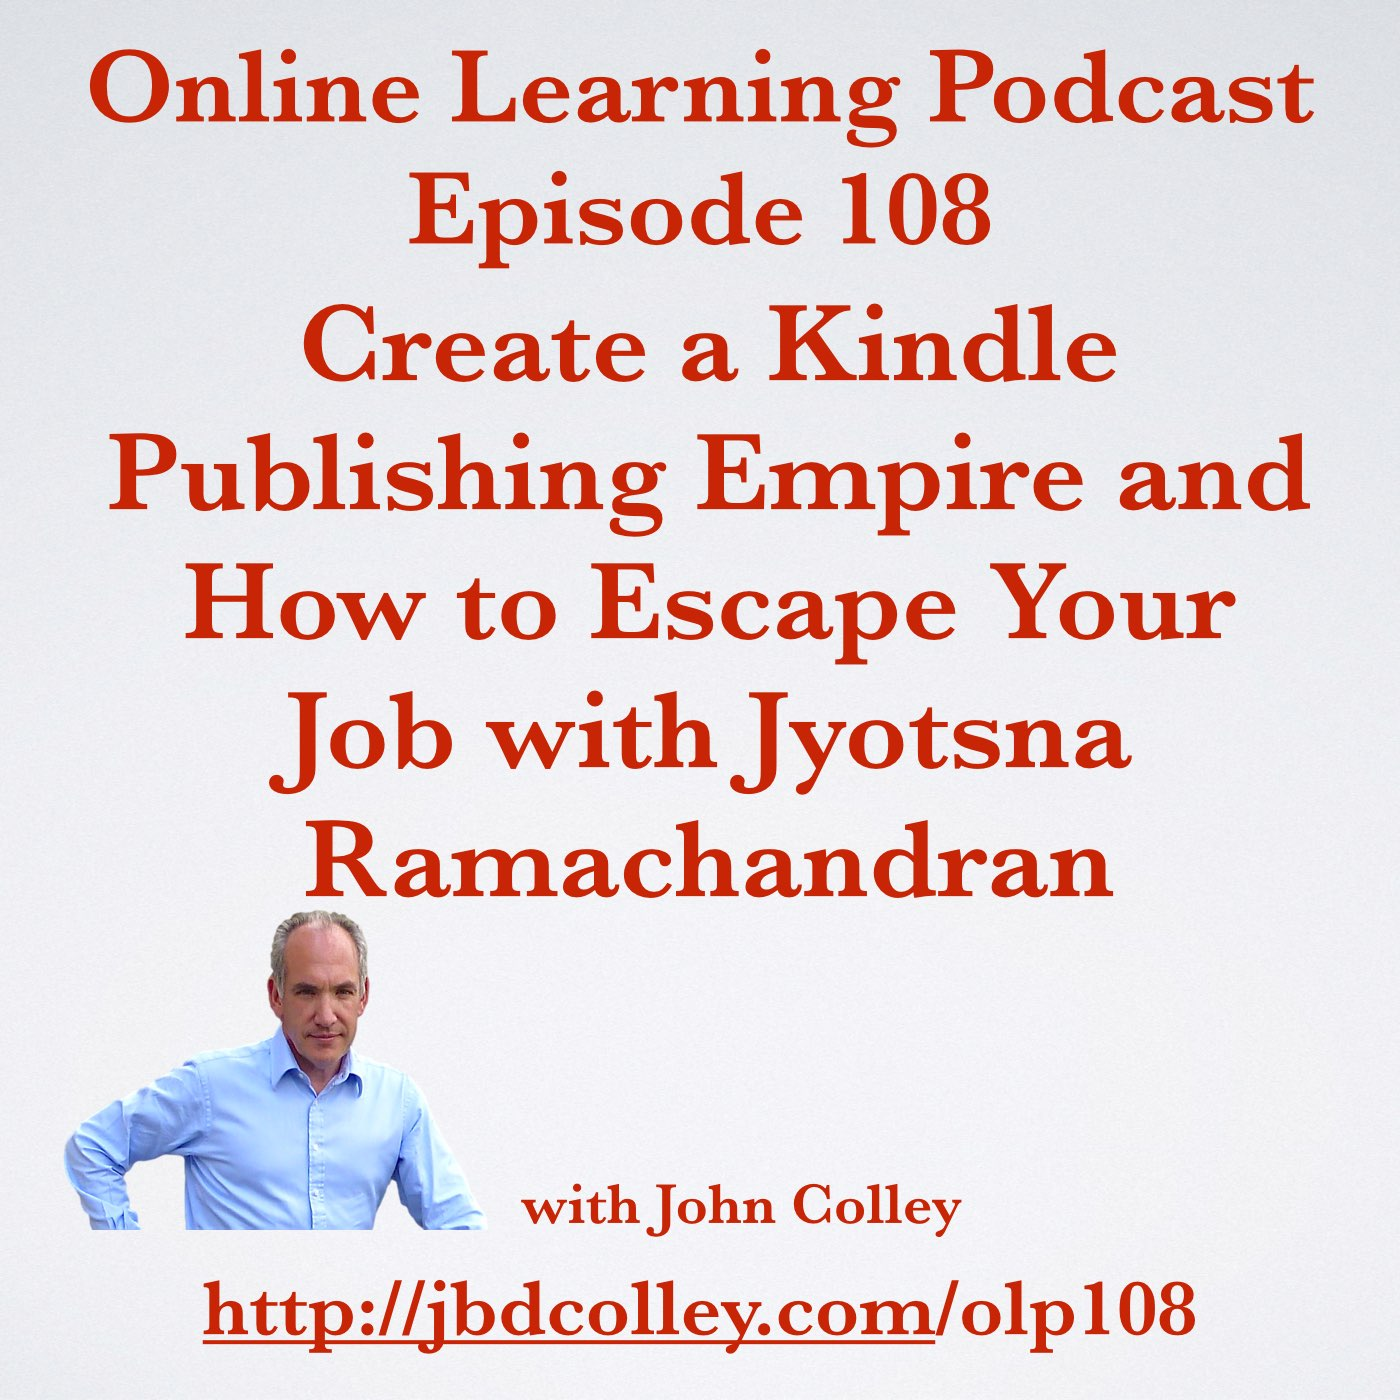 OLP108 Create a Kindle Publishing Empire and How to Escape Your Job with Jyotsna Ramachandran